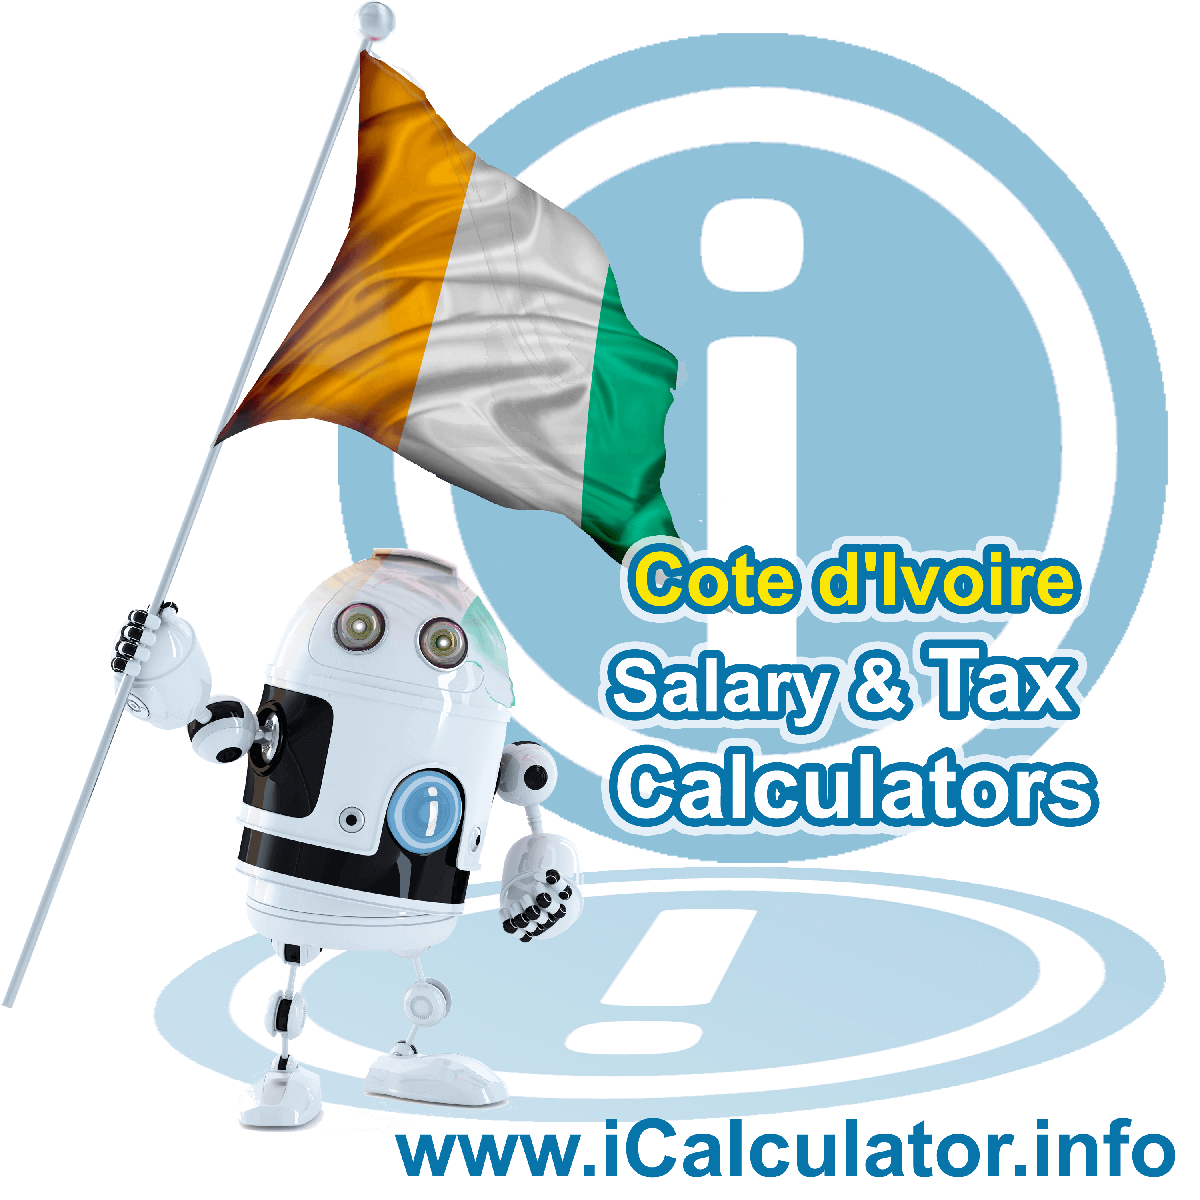 Cote Divoire Tax Calculator. This image shows the Cote Divoire flag and information relating to the tax formula for the Cote Divoire Salary Calculator